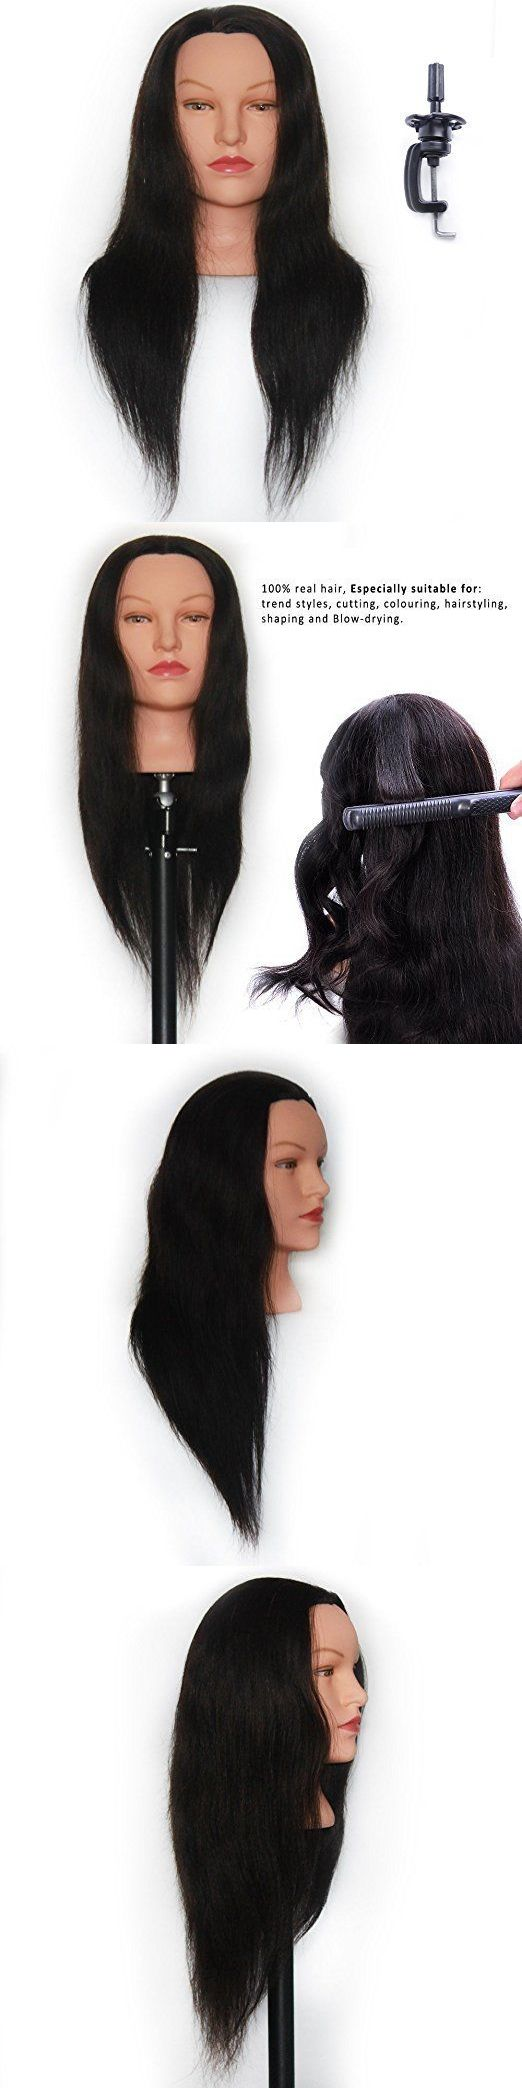 Other Salon and Spa Equipment: Mannequin Head 100% Human Hair 24 Hairdresser Training Head Manikin Cosmetology -> BUY IT NOW ONLY: $37.99 on eBay!